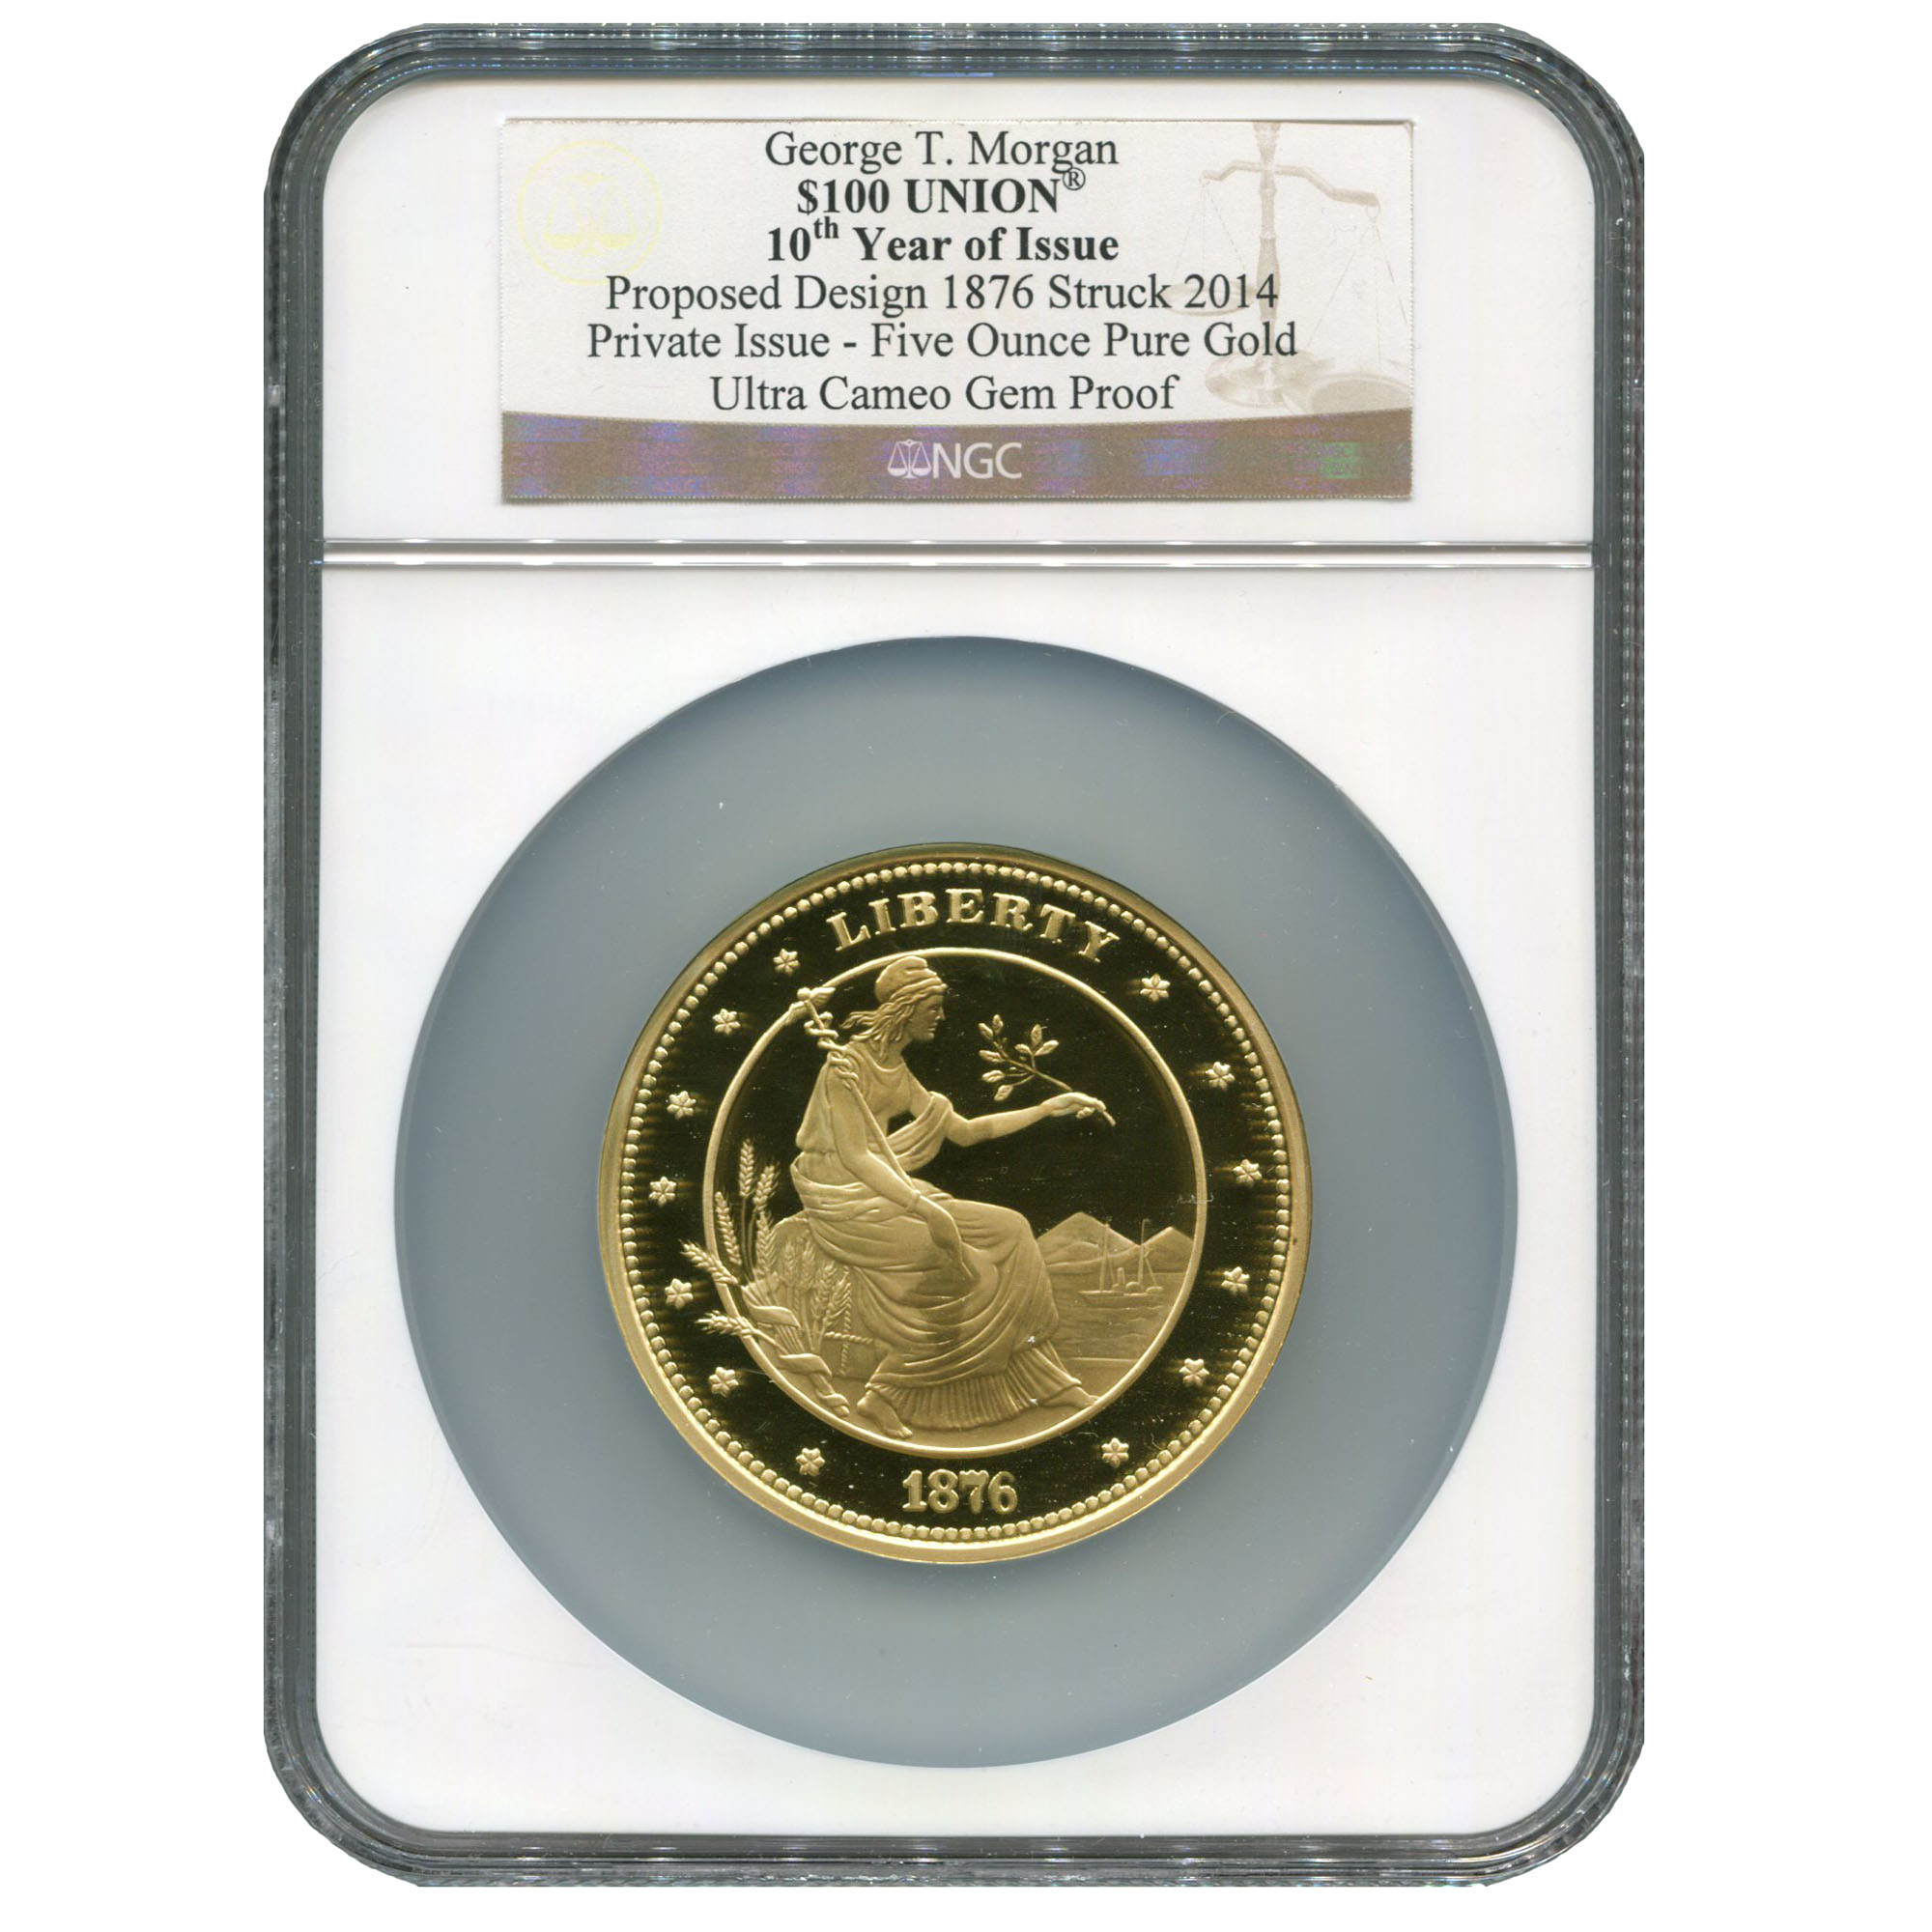 Certified $100 Gold Union Five Ounce Proposed 1876 Design Struck 2014 NGC Gem Proof Vertical